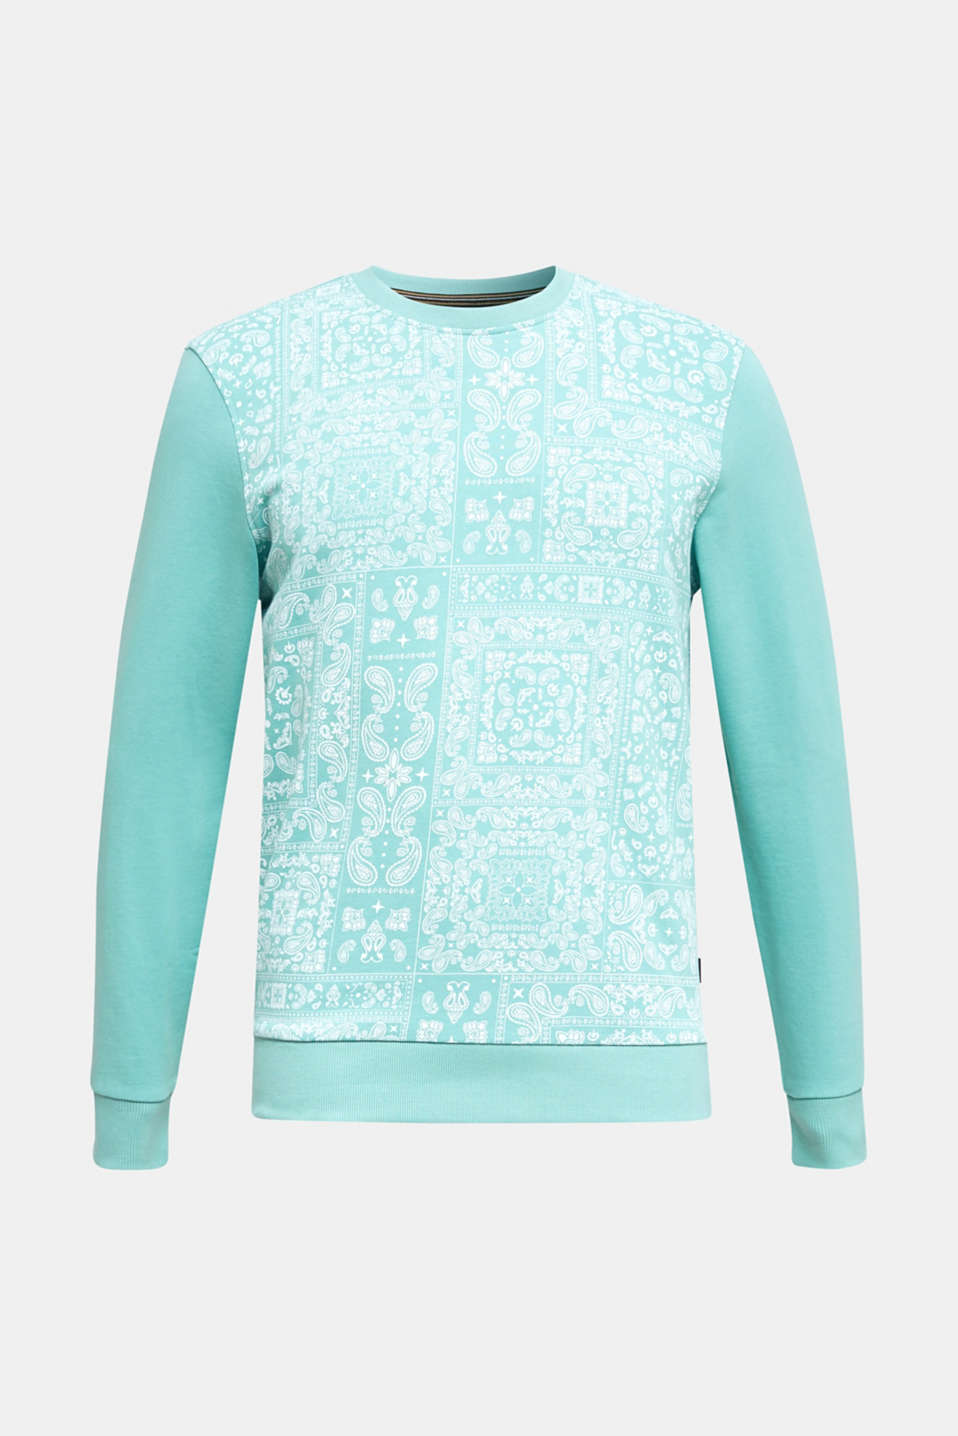 Sweatshirt with a paisley print, 100% cotton, DUSTY GREEN 4, detail image number 7